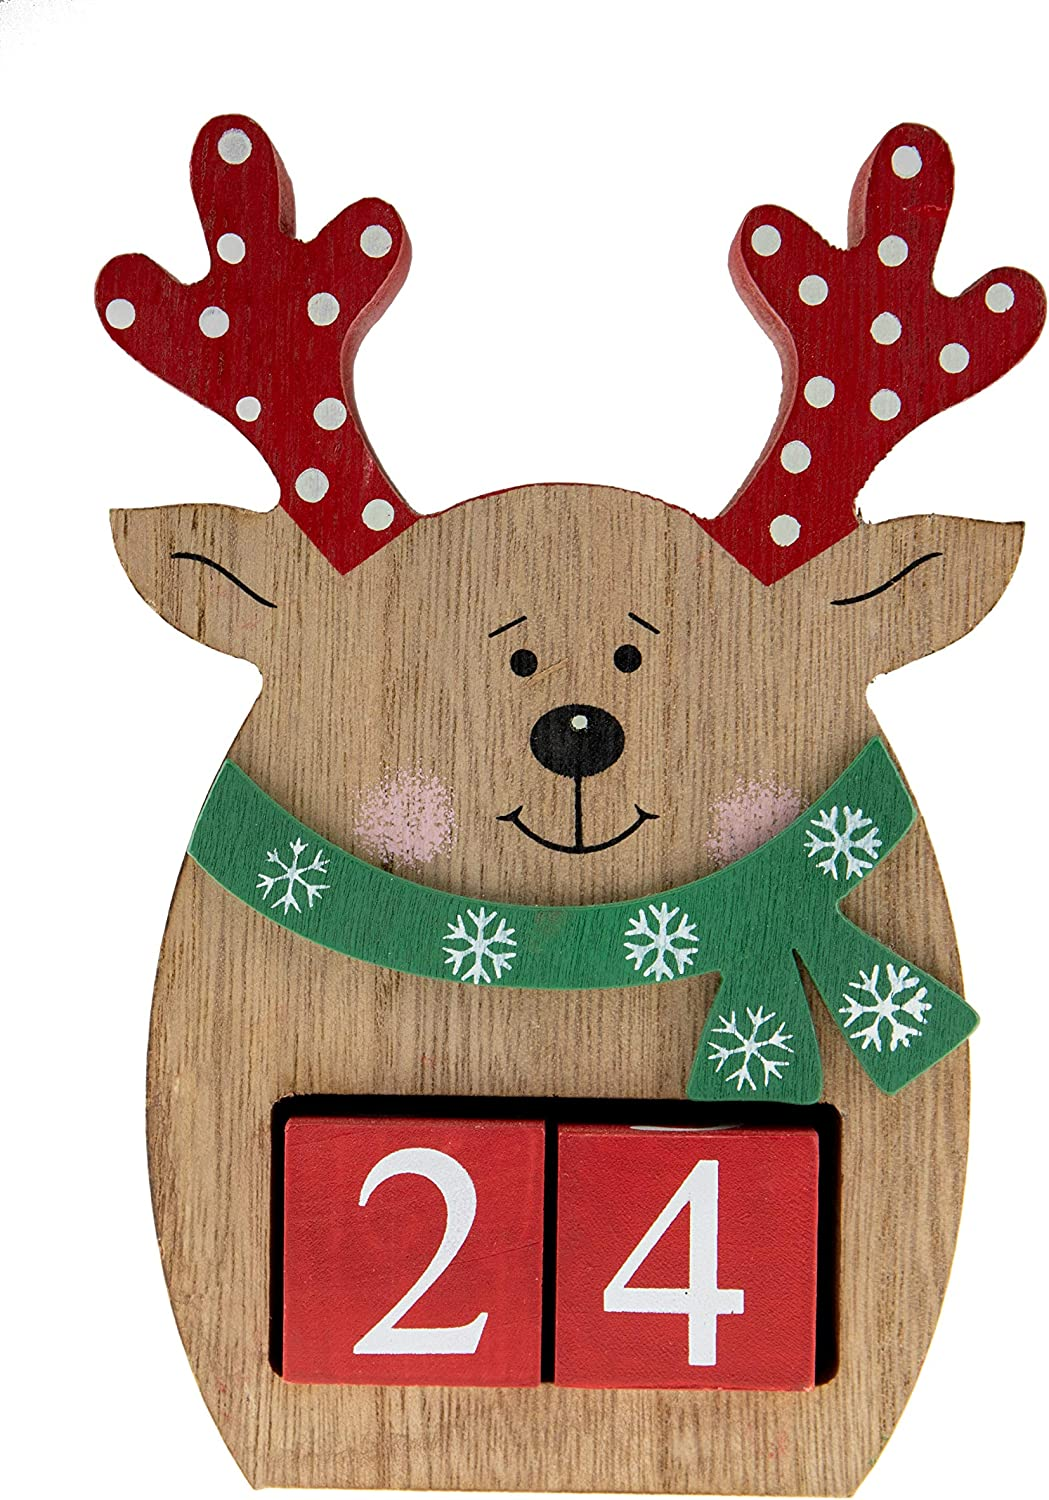 Clever Creations Wooden Christmas Advent Calendar, Countdown to Christmas, Festive Holiday Decoration, Round Reindeer